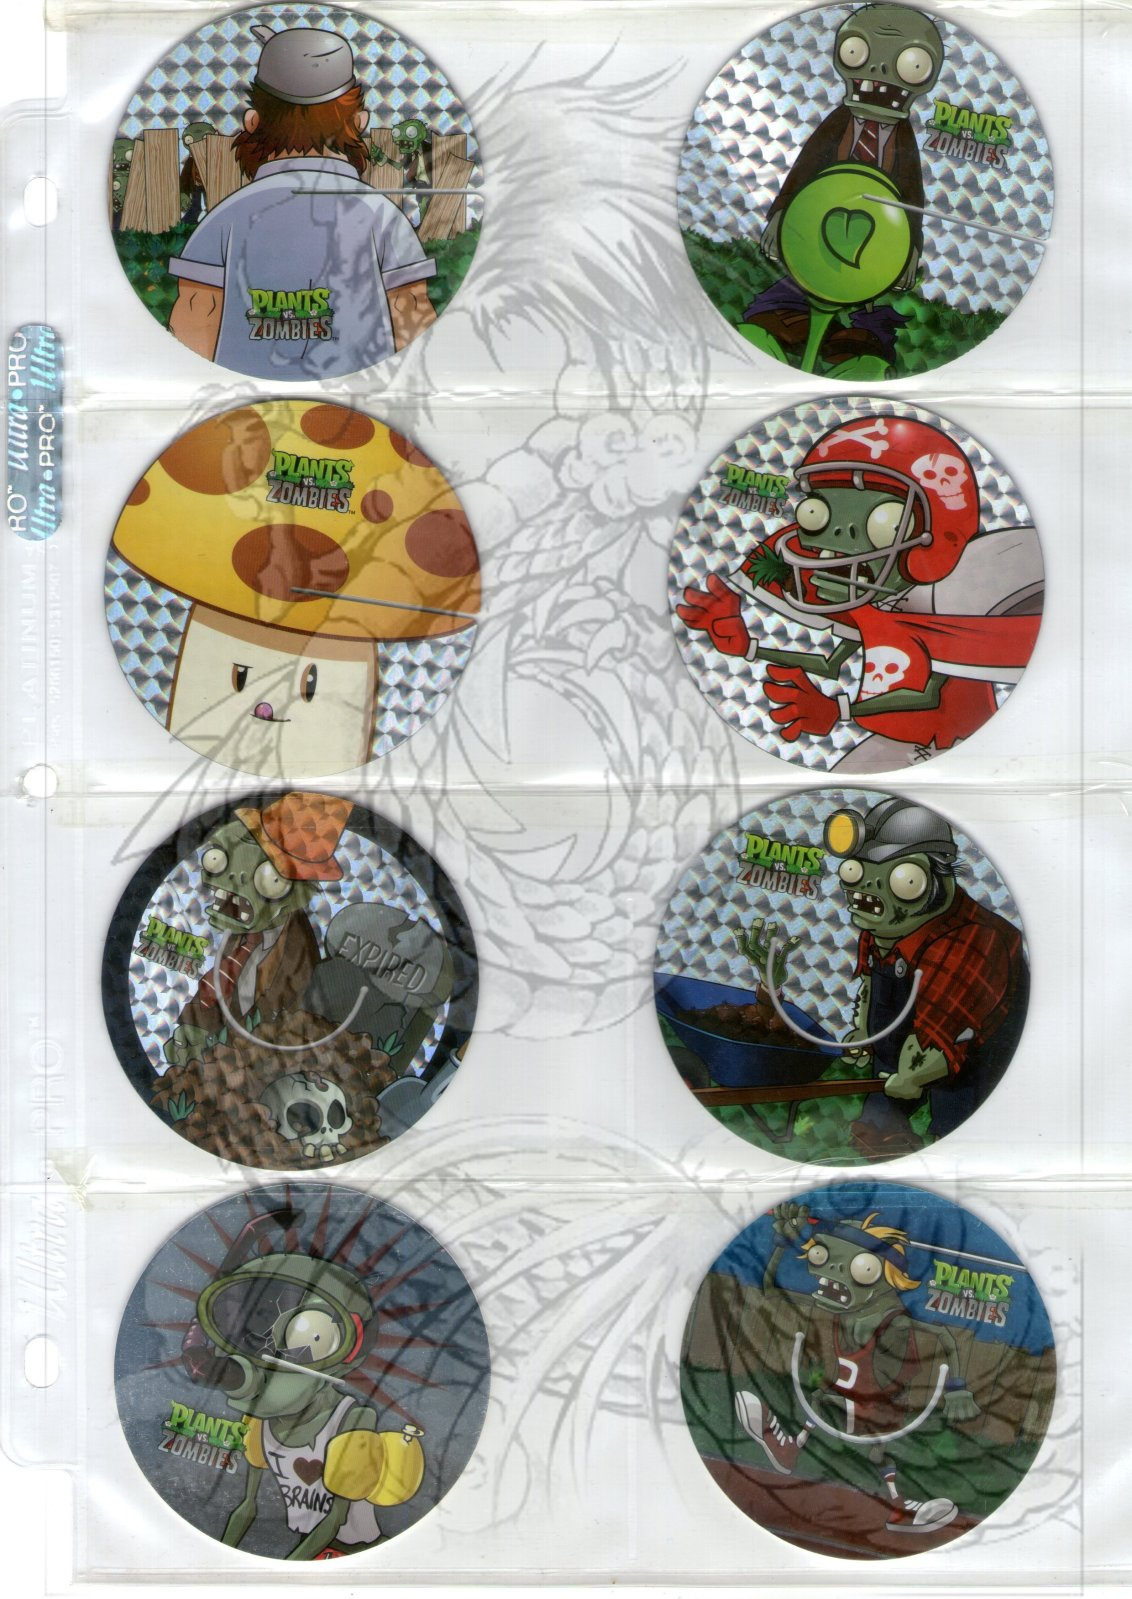 Tazos Plantas Vs Zombies de SABRITAS 2gt3zhy